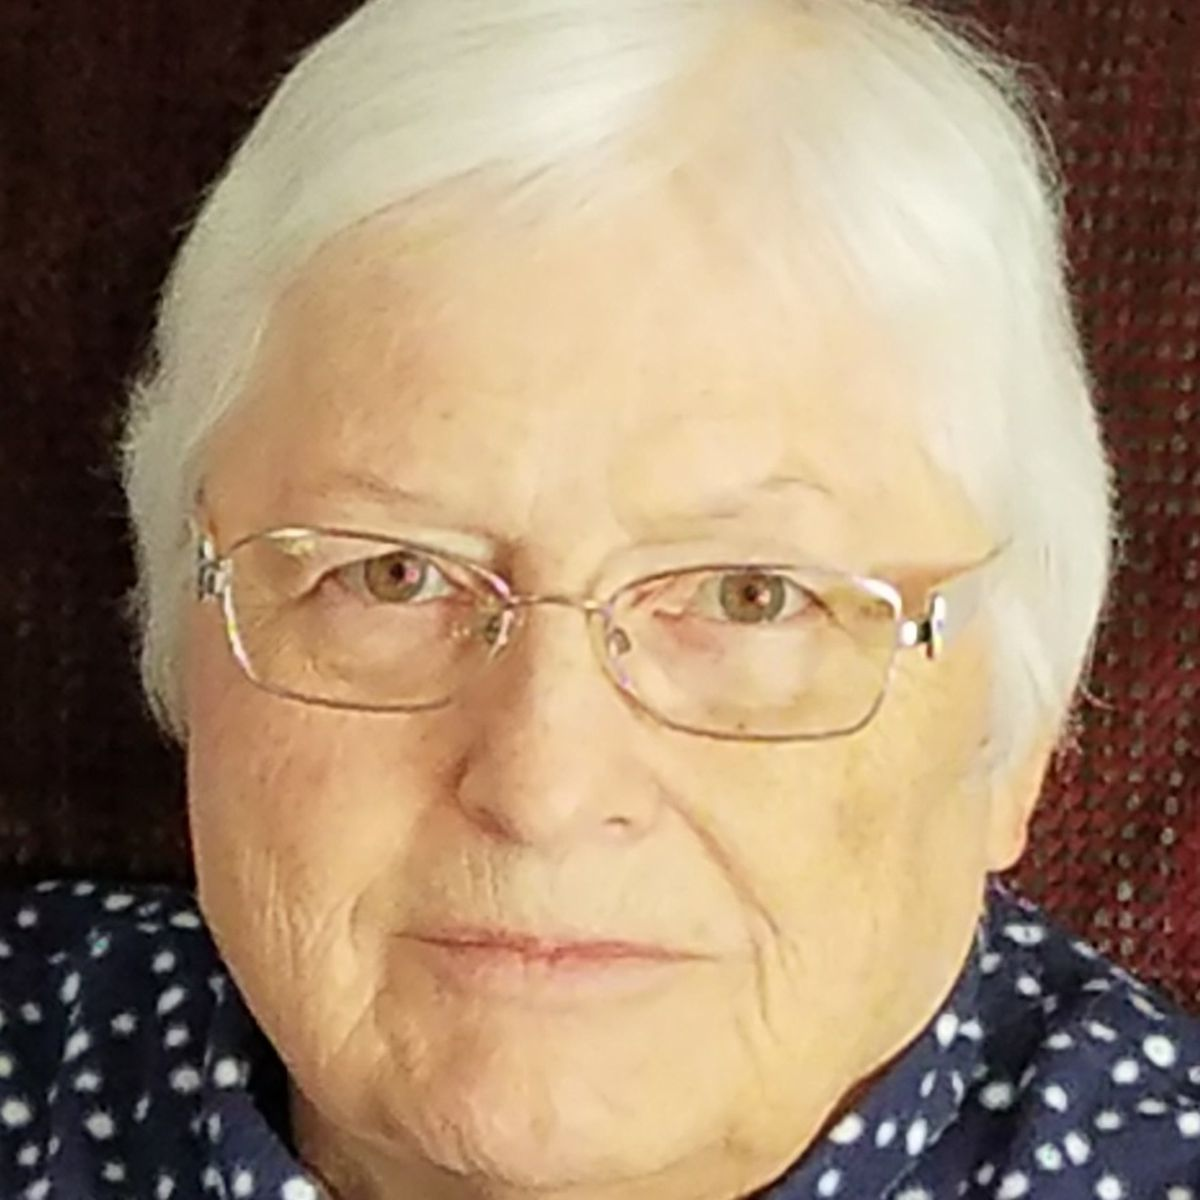 Rose A. Stemples, 76, of Ogdensburg